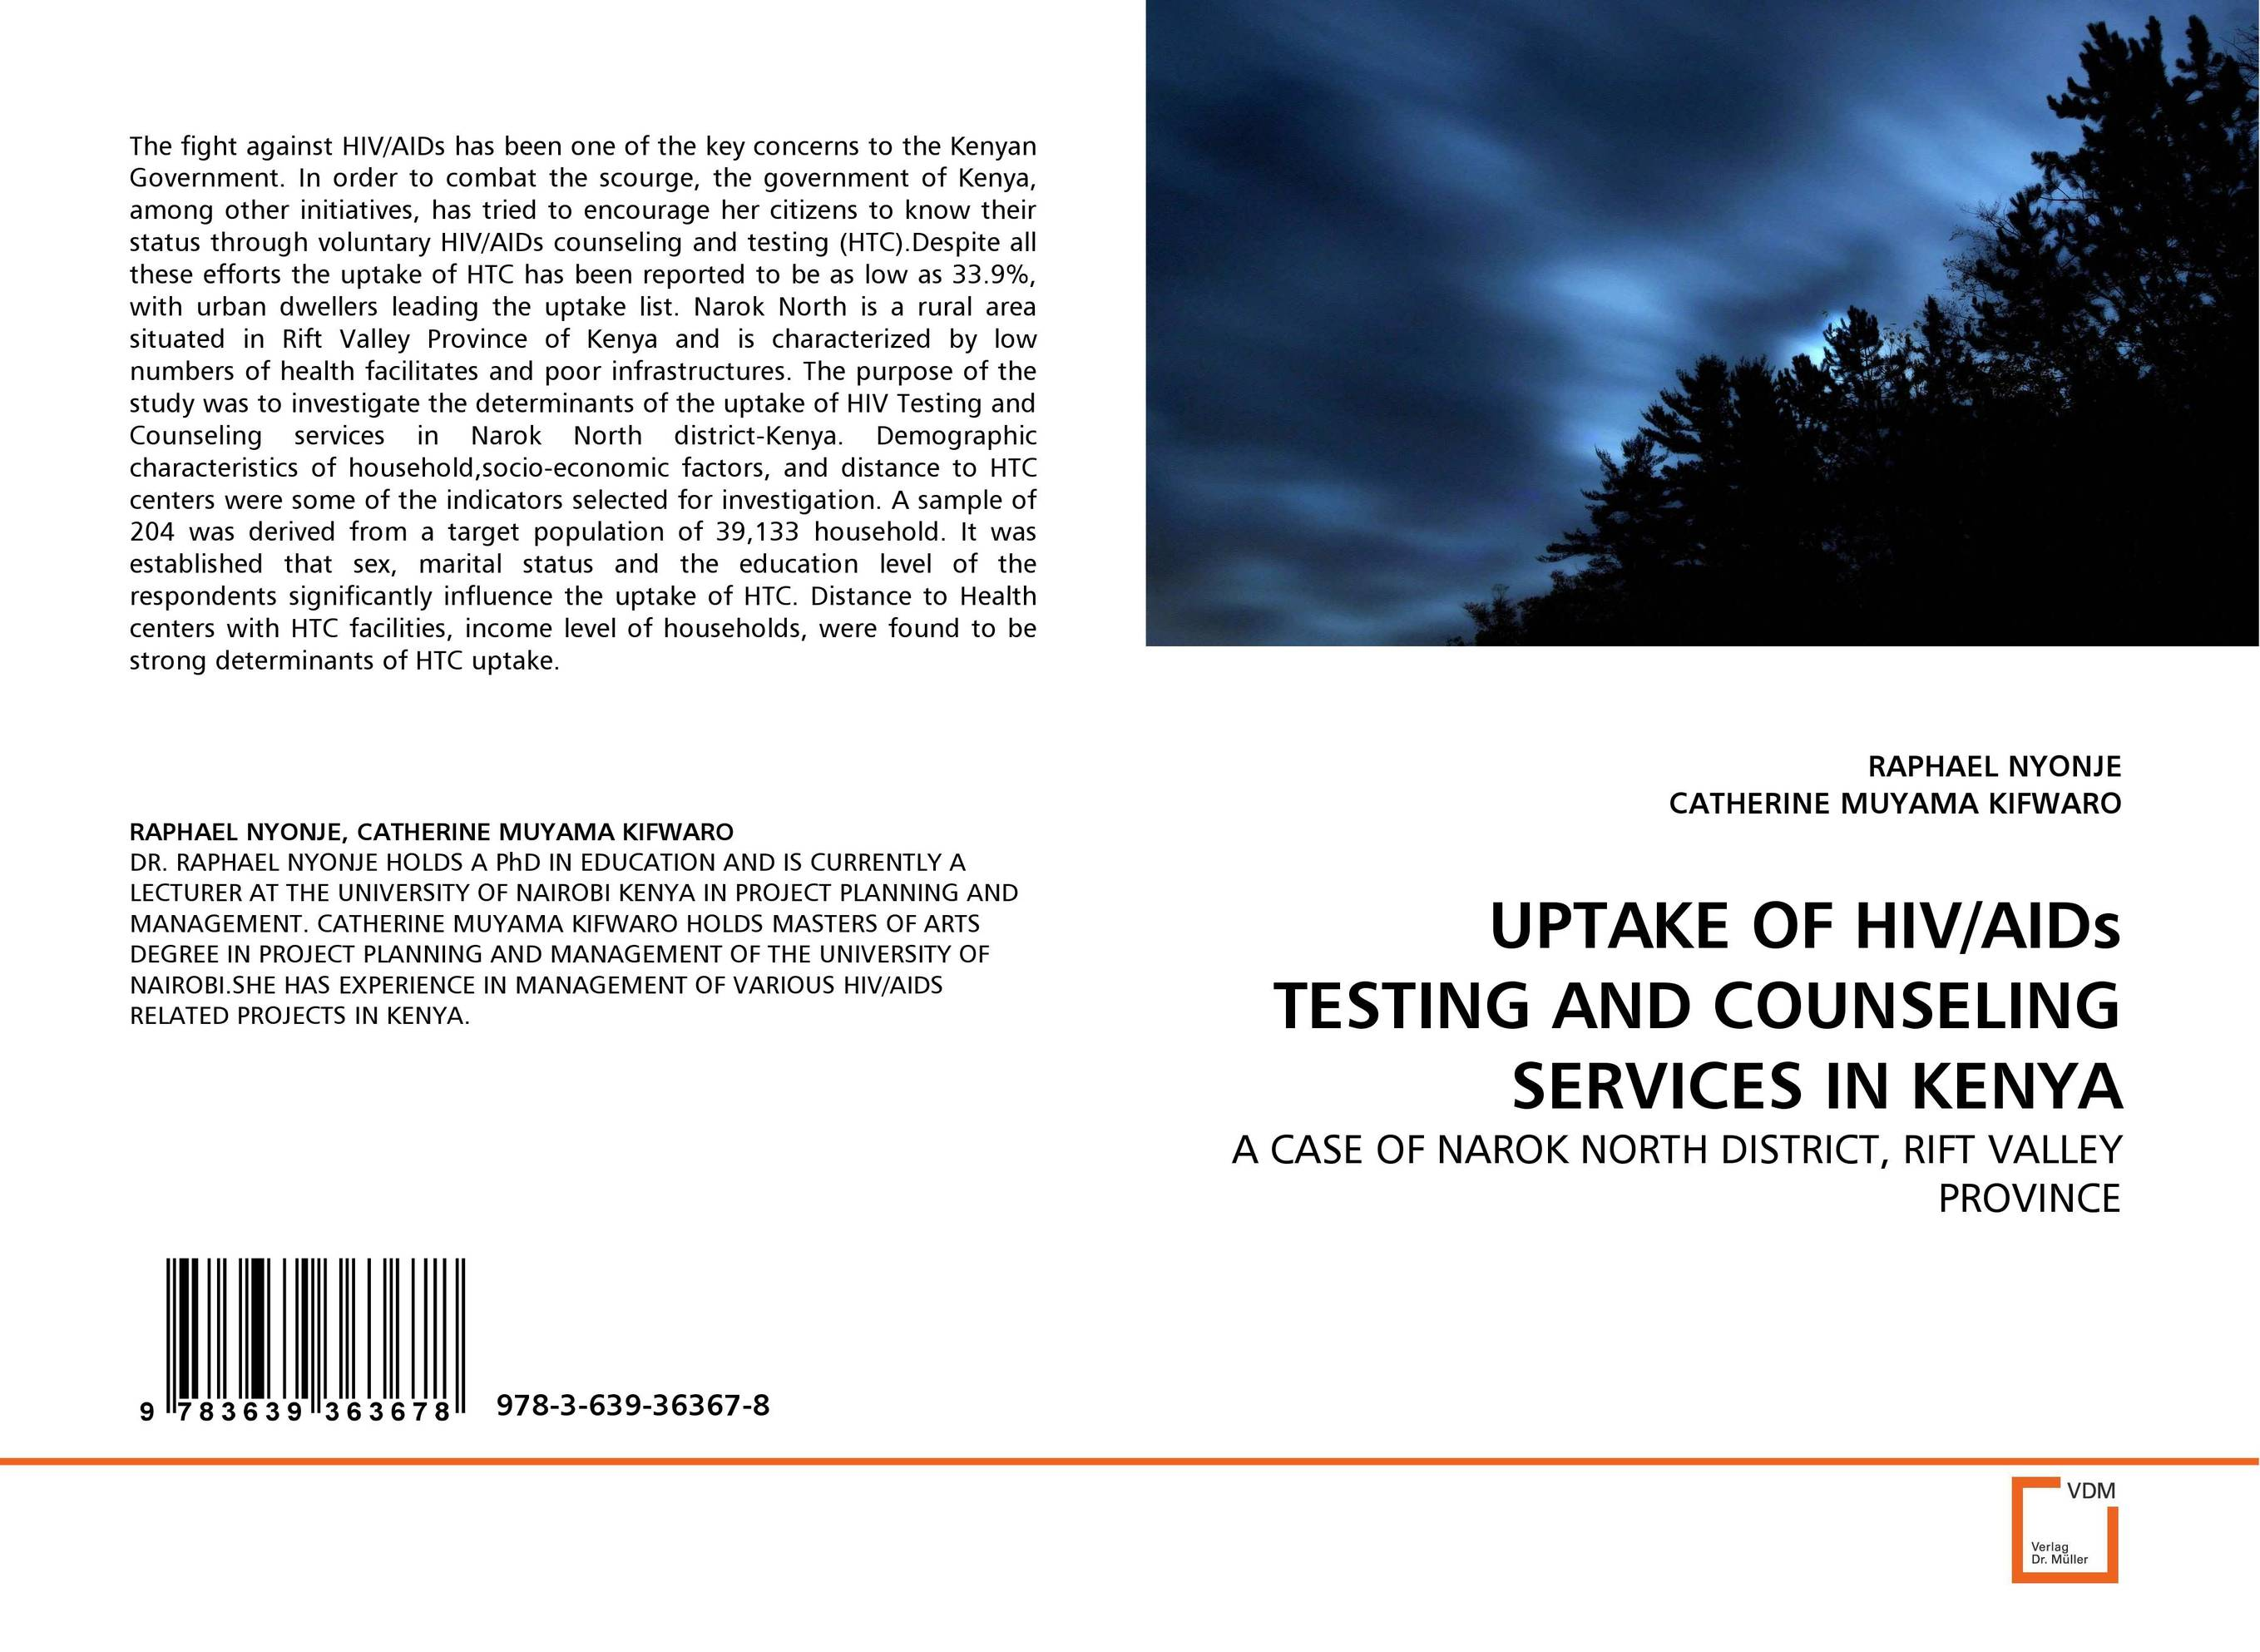 UPTAKE OF HIV/AIDs TESTING AND COUNSELING SERVICES IN KENYA assessment of hiv status disclosure among plwha in tano north district